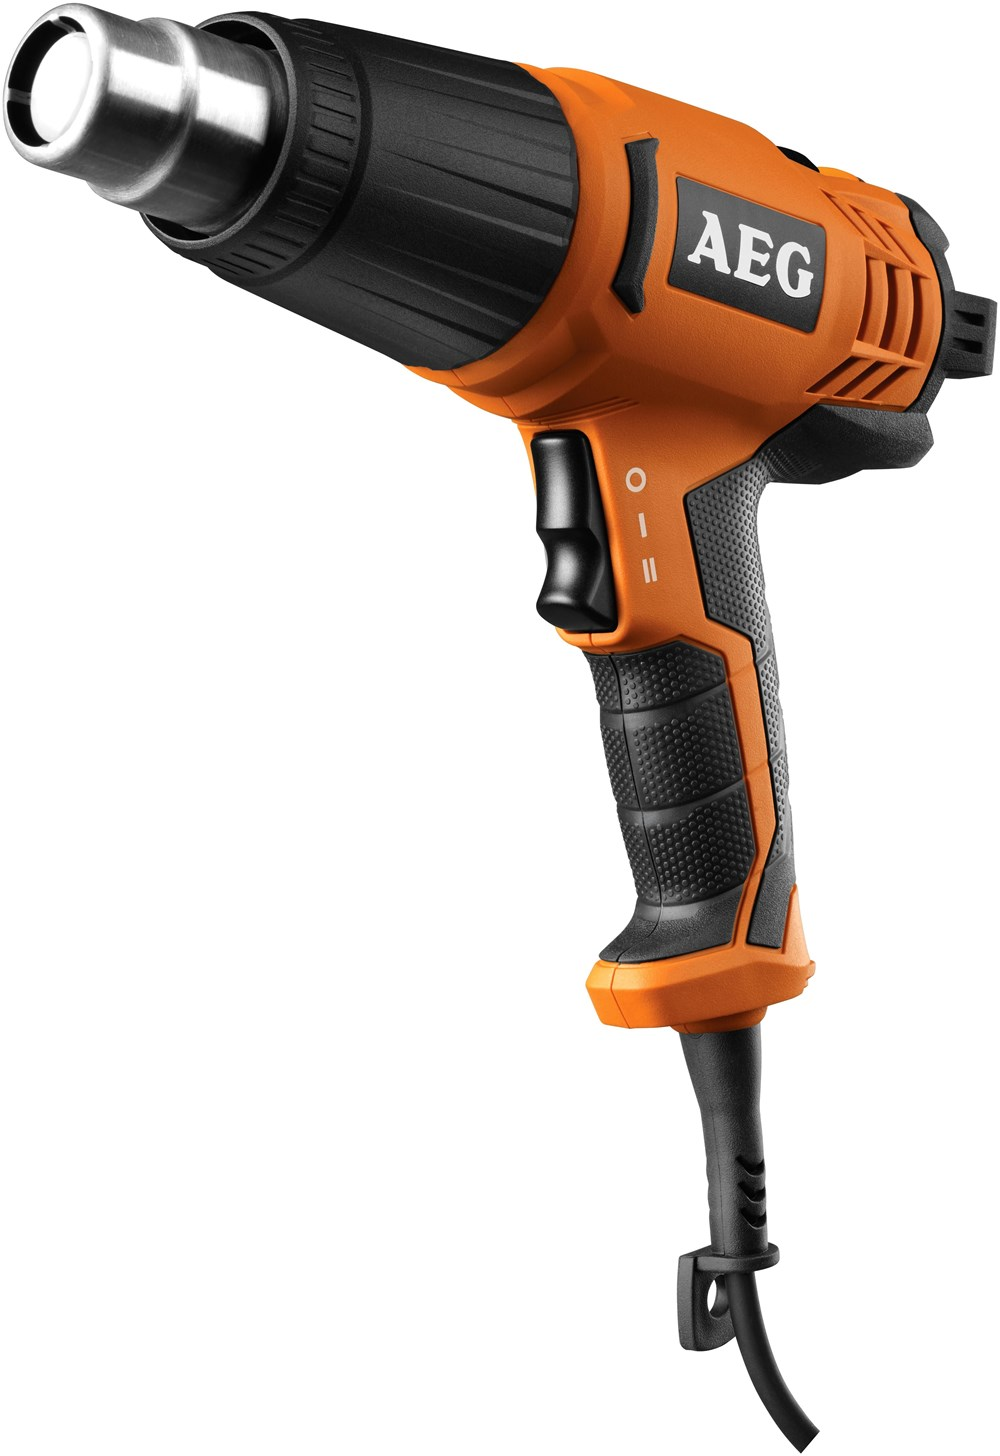 aeg powertools hg 600 vk hot air heat guns. Black Bedroom Furniture Sets. Home Design Ideas